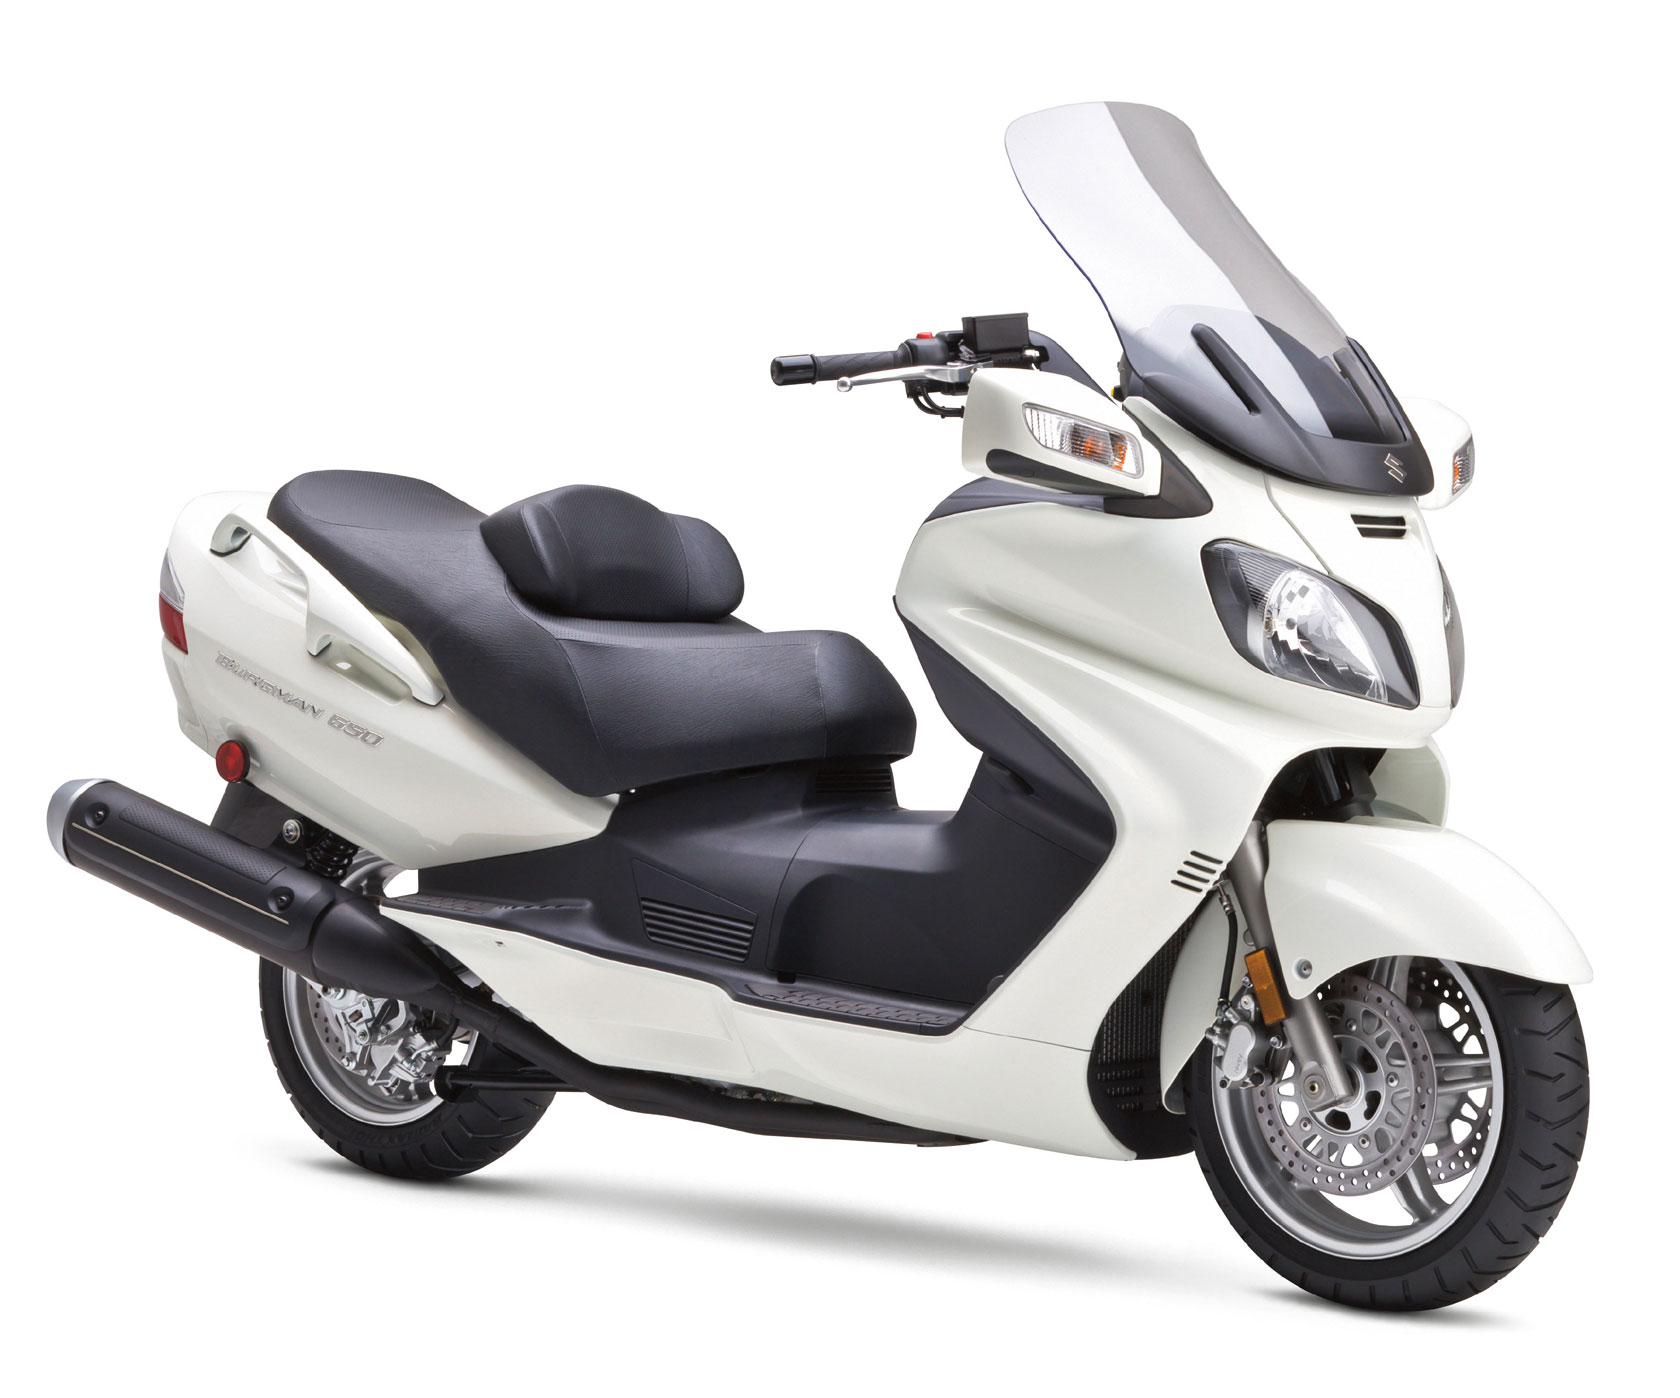 2013 Suzuki Motorcycles Total Motorcycle Your Virtual Riding | Autos